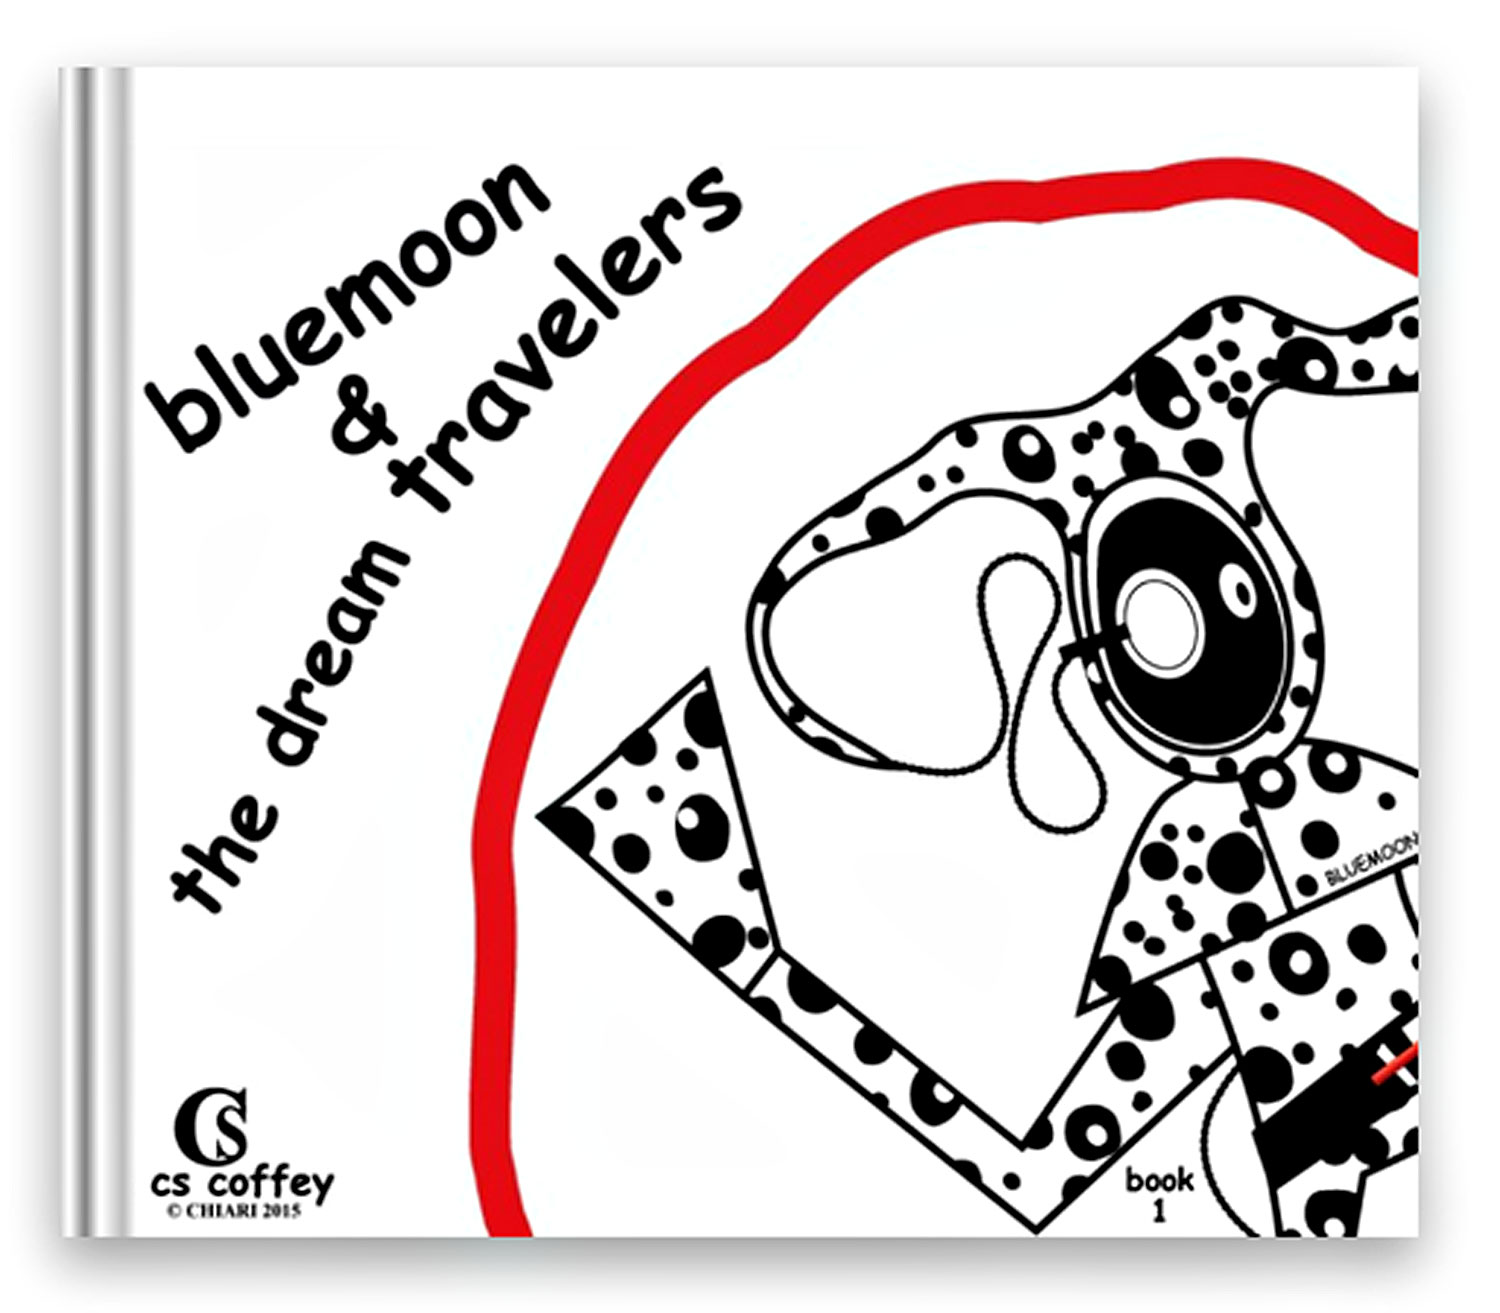 bluemoon & the dream travelers 10x8 softcover book